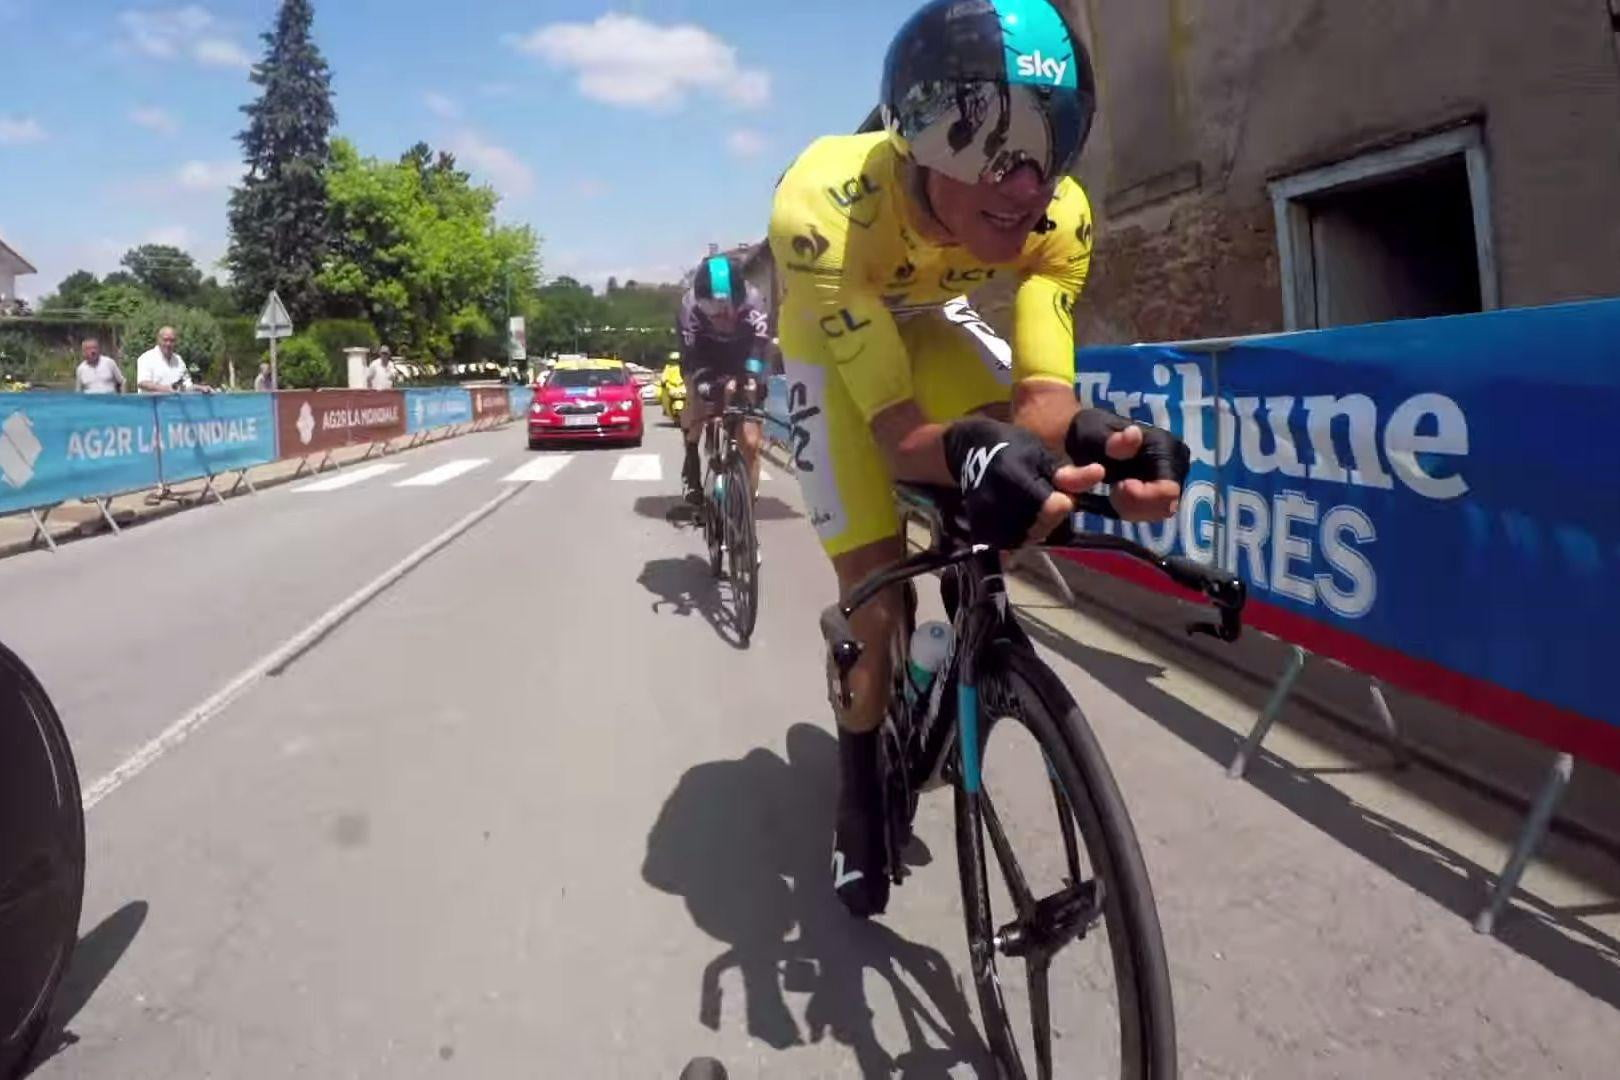 Tour de France goes high-tech with GoPro footage and live rider tracking